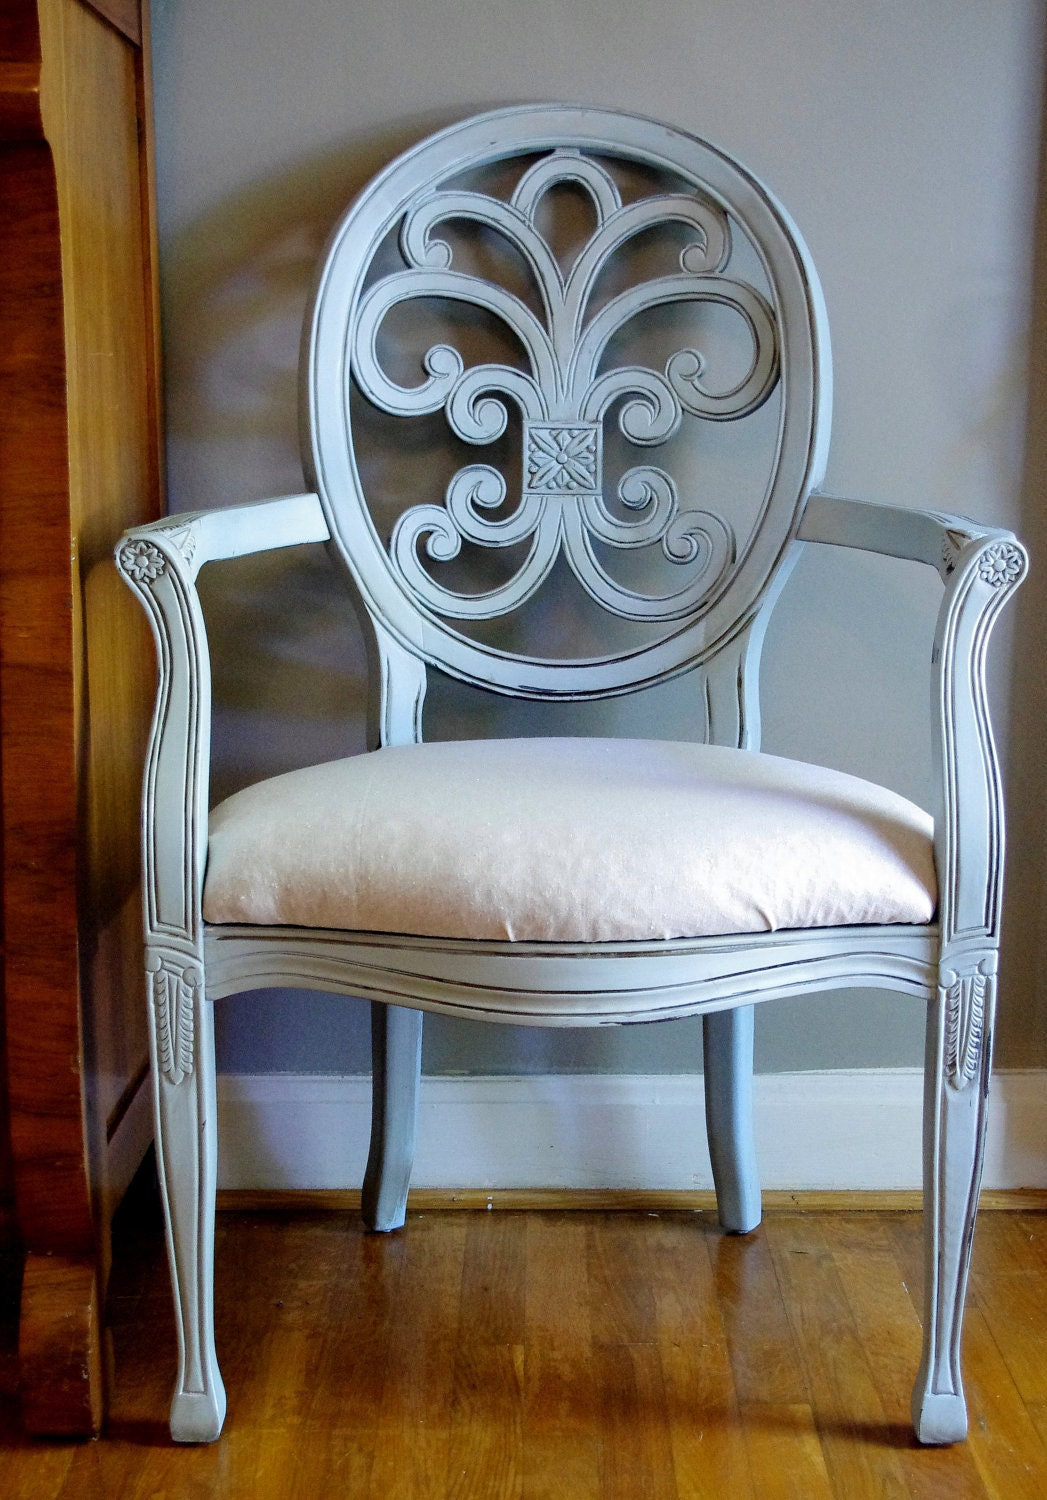 sold Robins Egg Blue French Chair - aSouthernStory